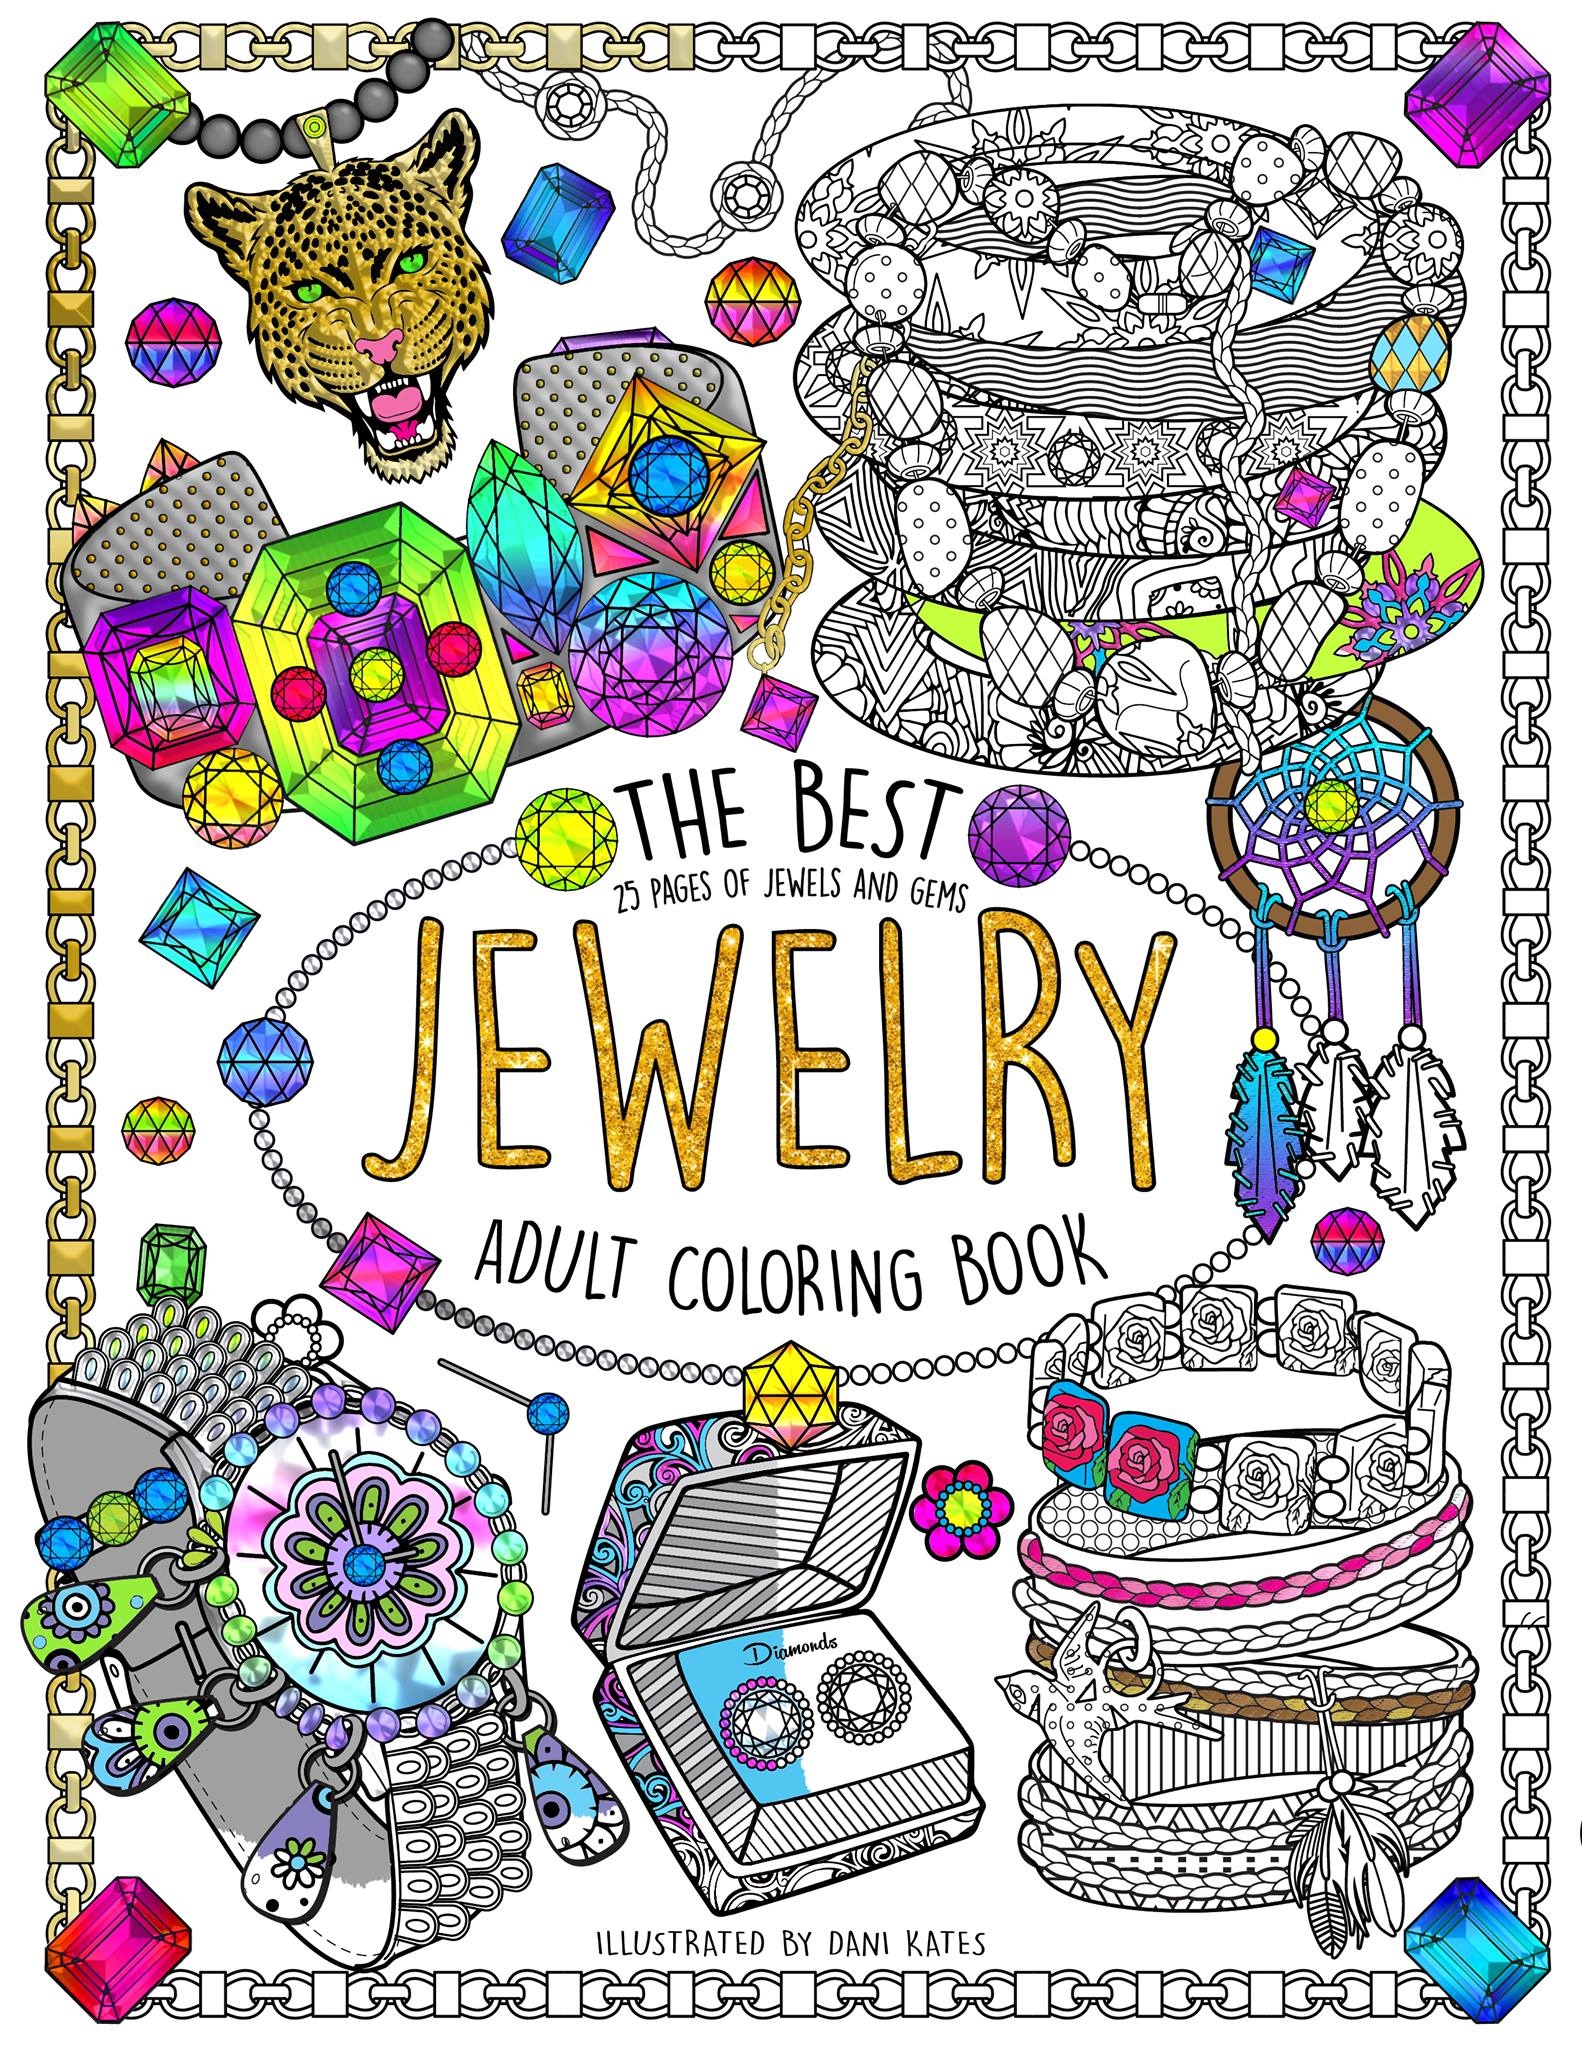 Cover of 'The Best Jewelry adult coloring book', available here